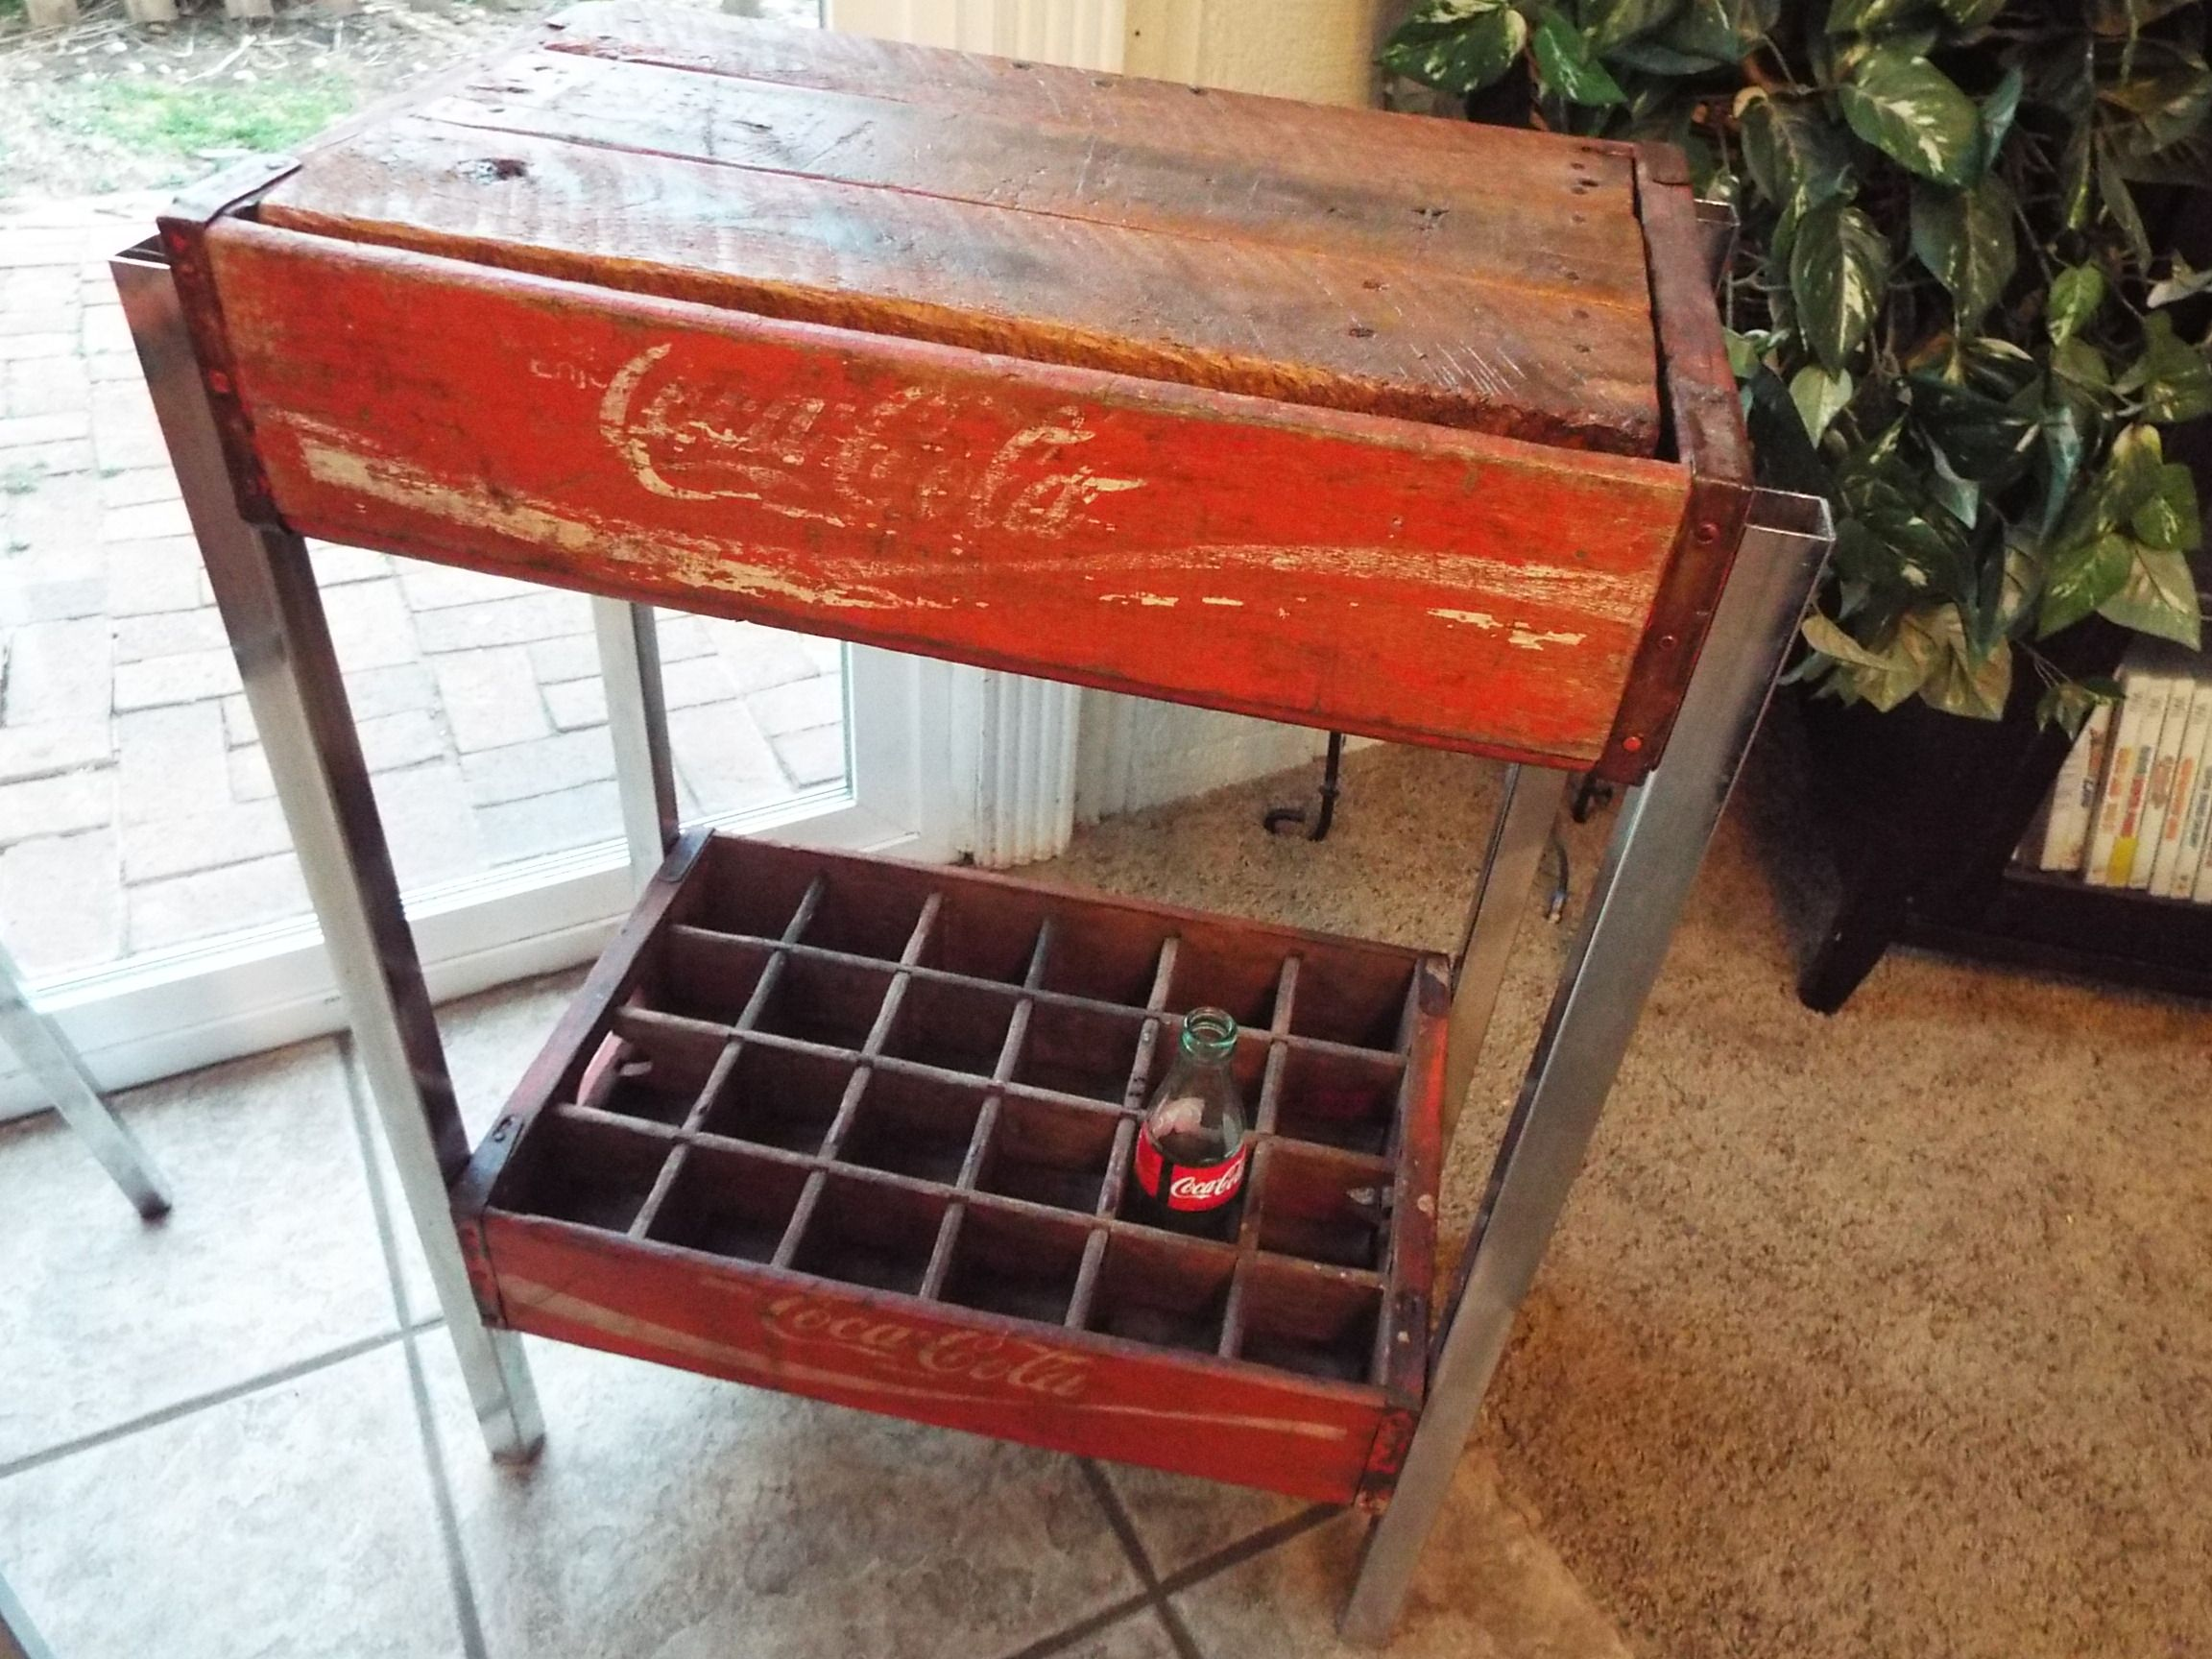 2 old coke crates made as an end table with lid for books